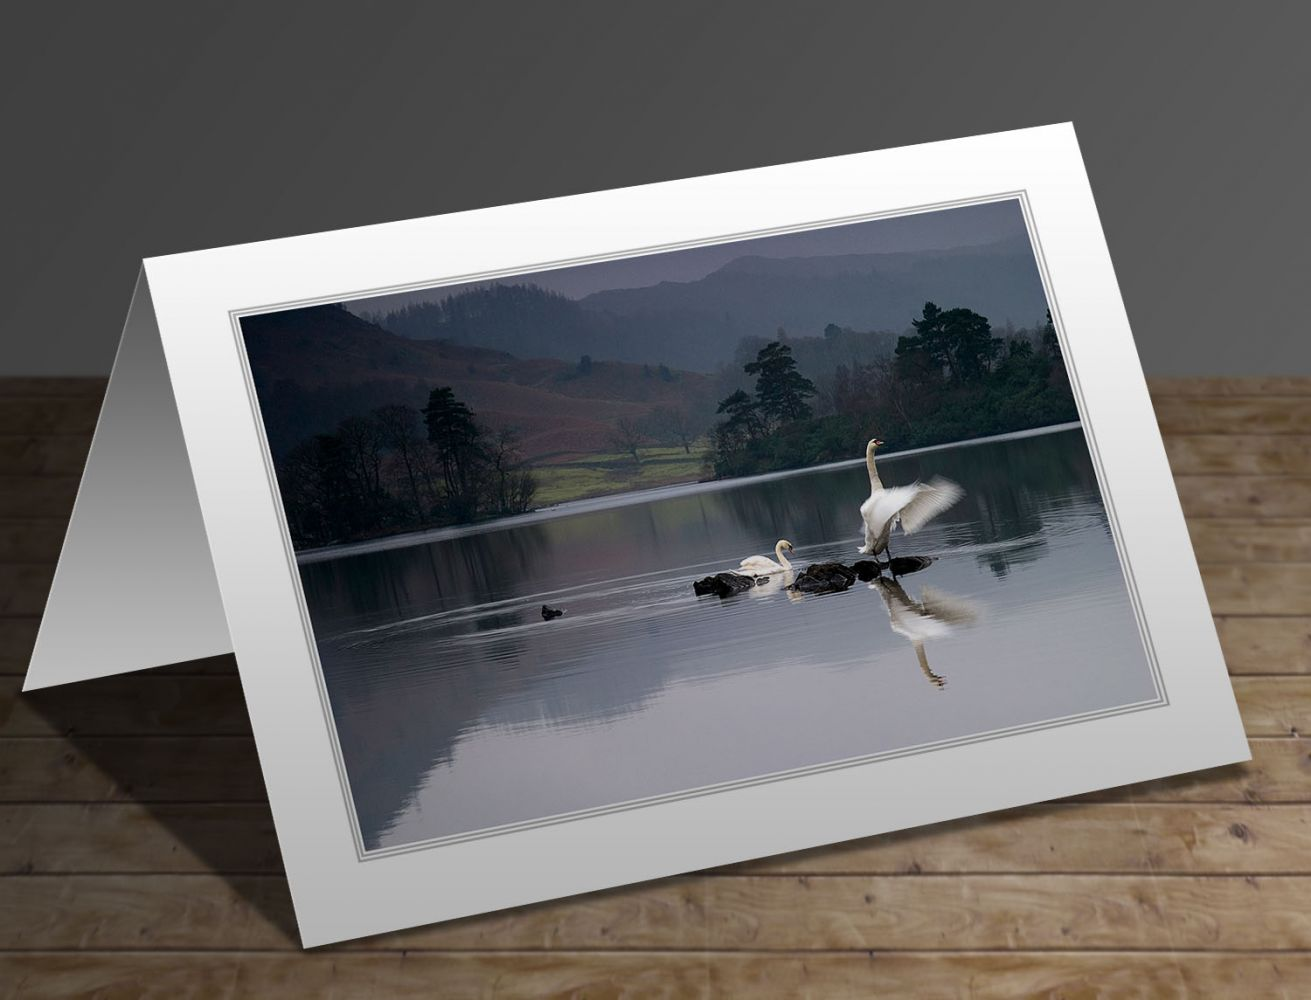 A greeting card featuring the Lake District image Dawn Display at Rydal Water by Martin Lawrence